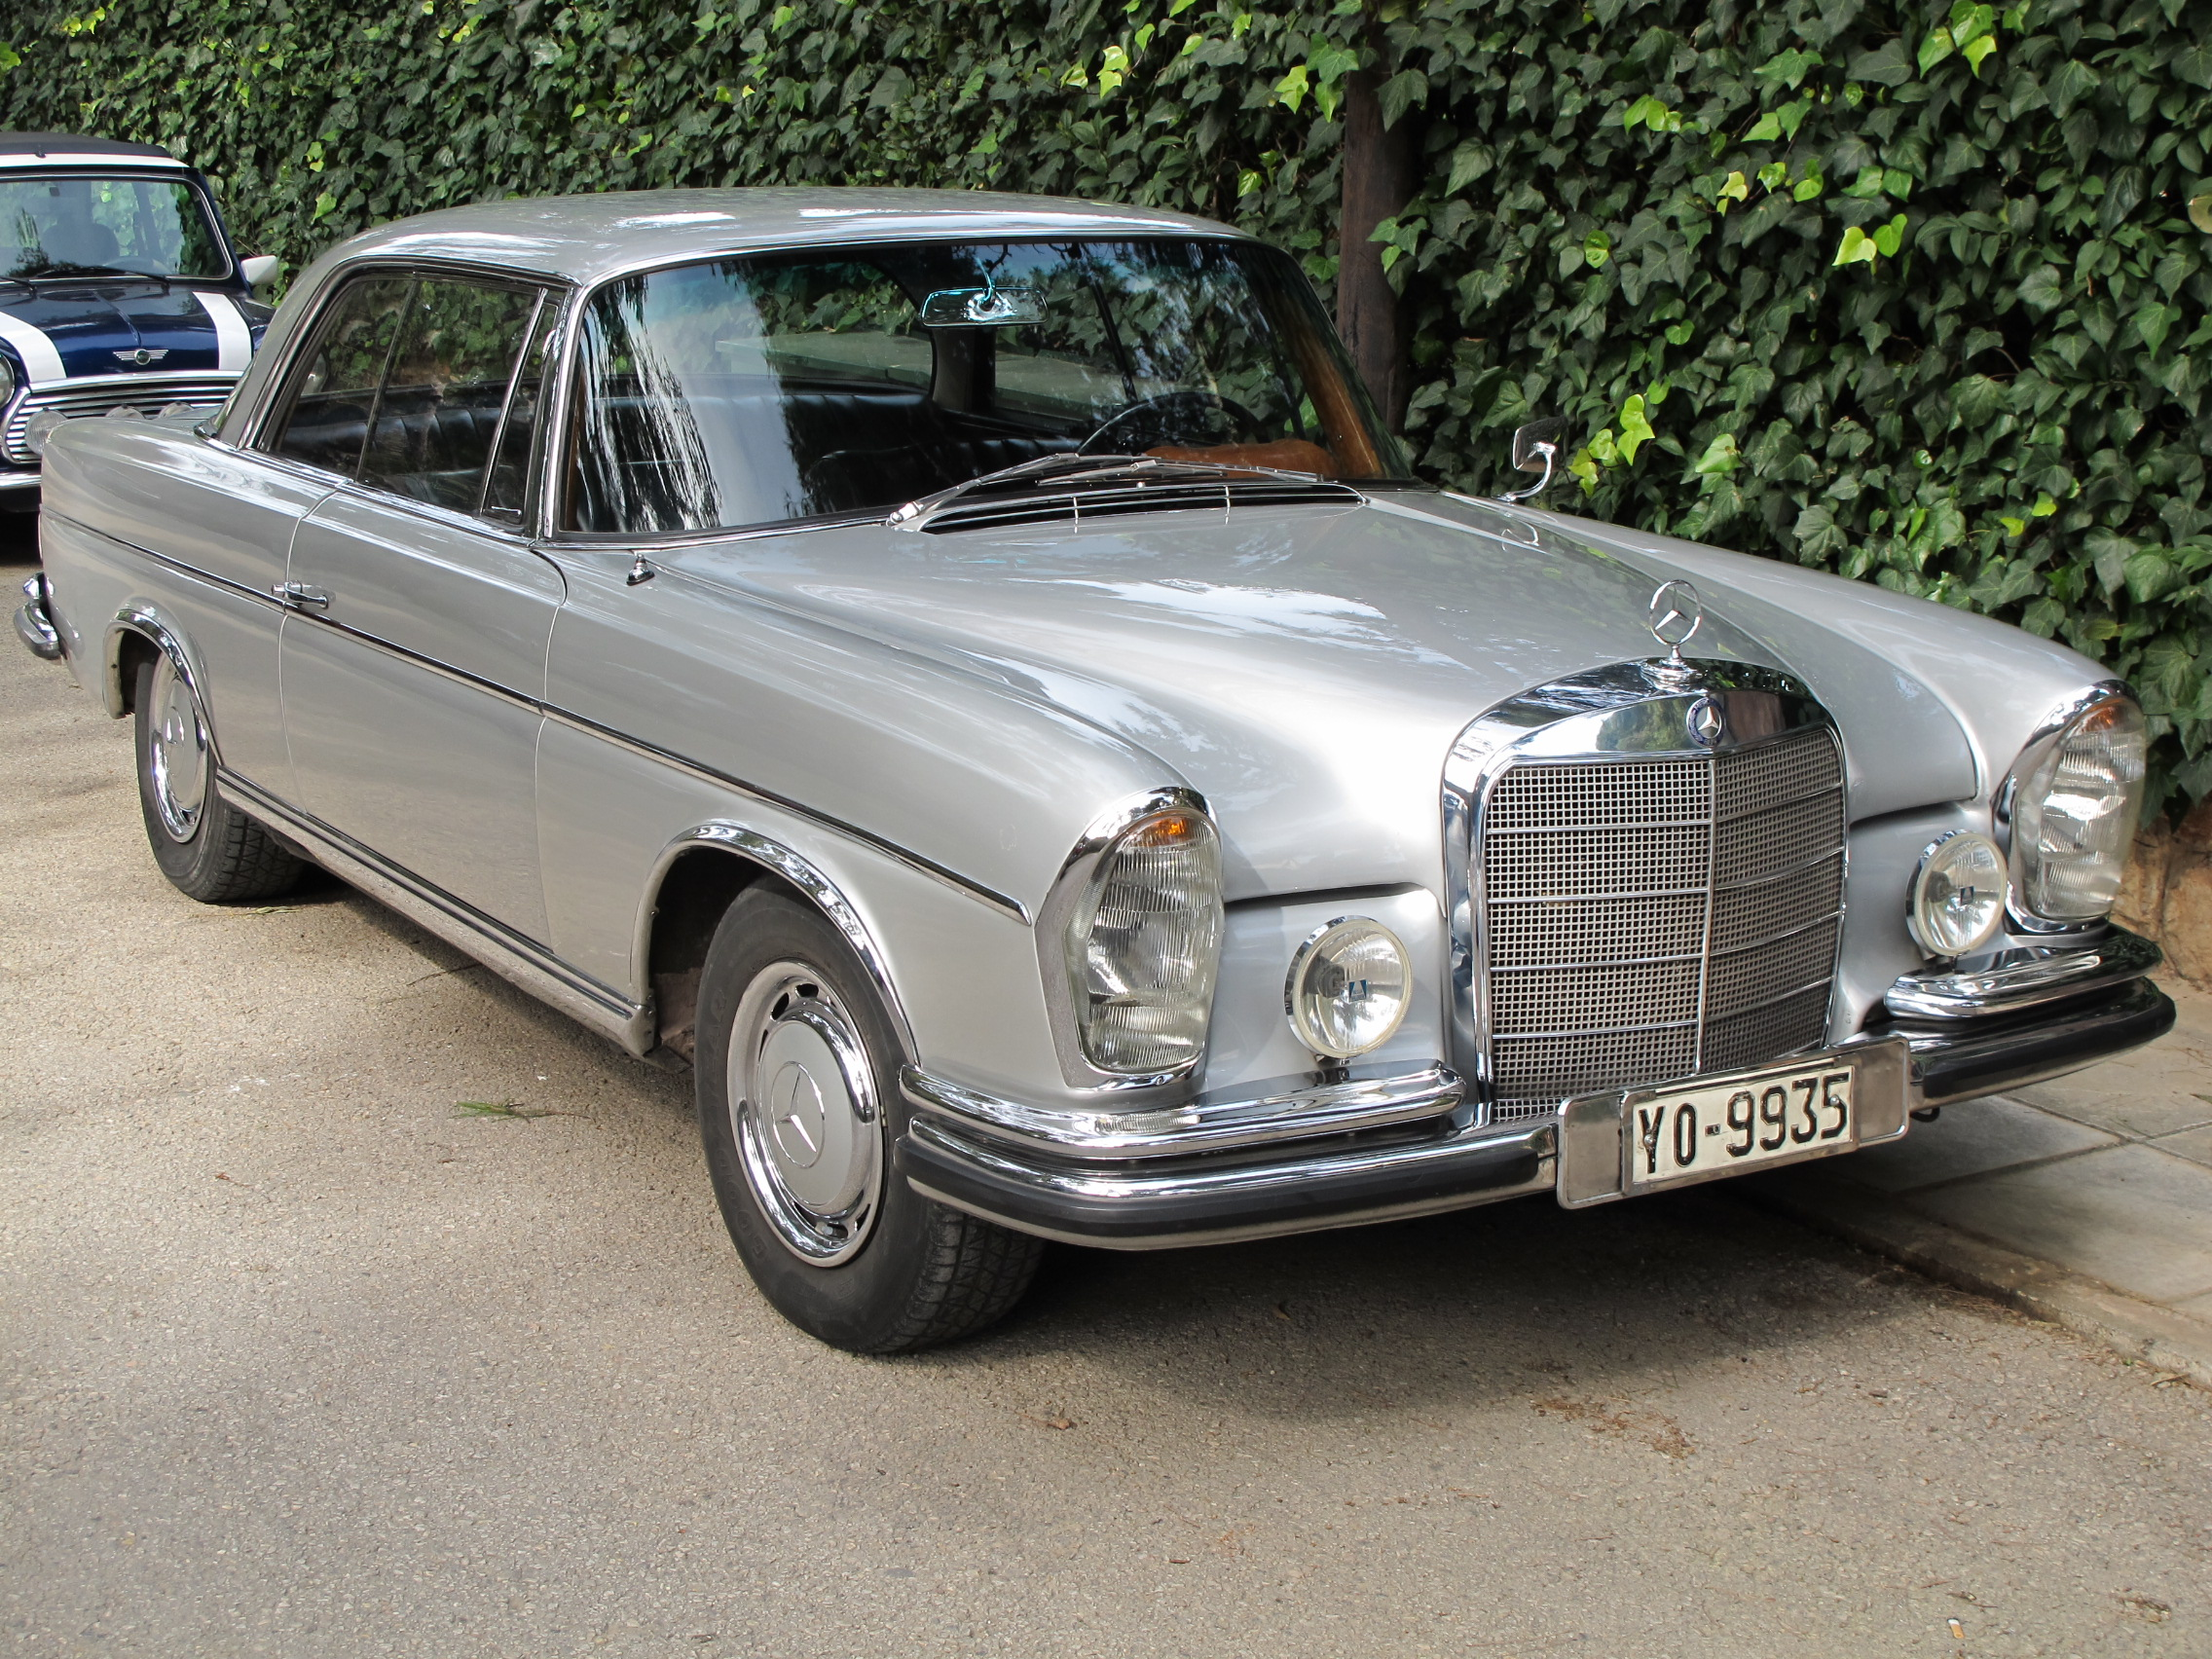 Mercedes benz 250 se coup w111 iii a 1967 chassis w111 for Mercedes benz 250 se